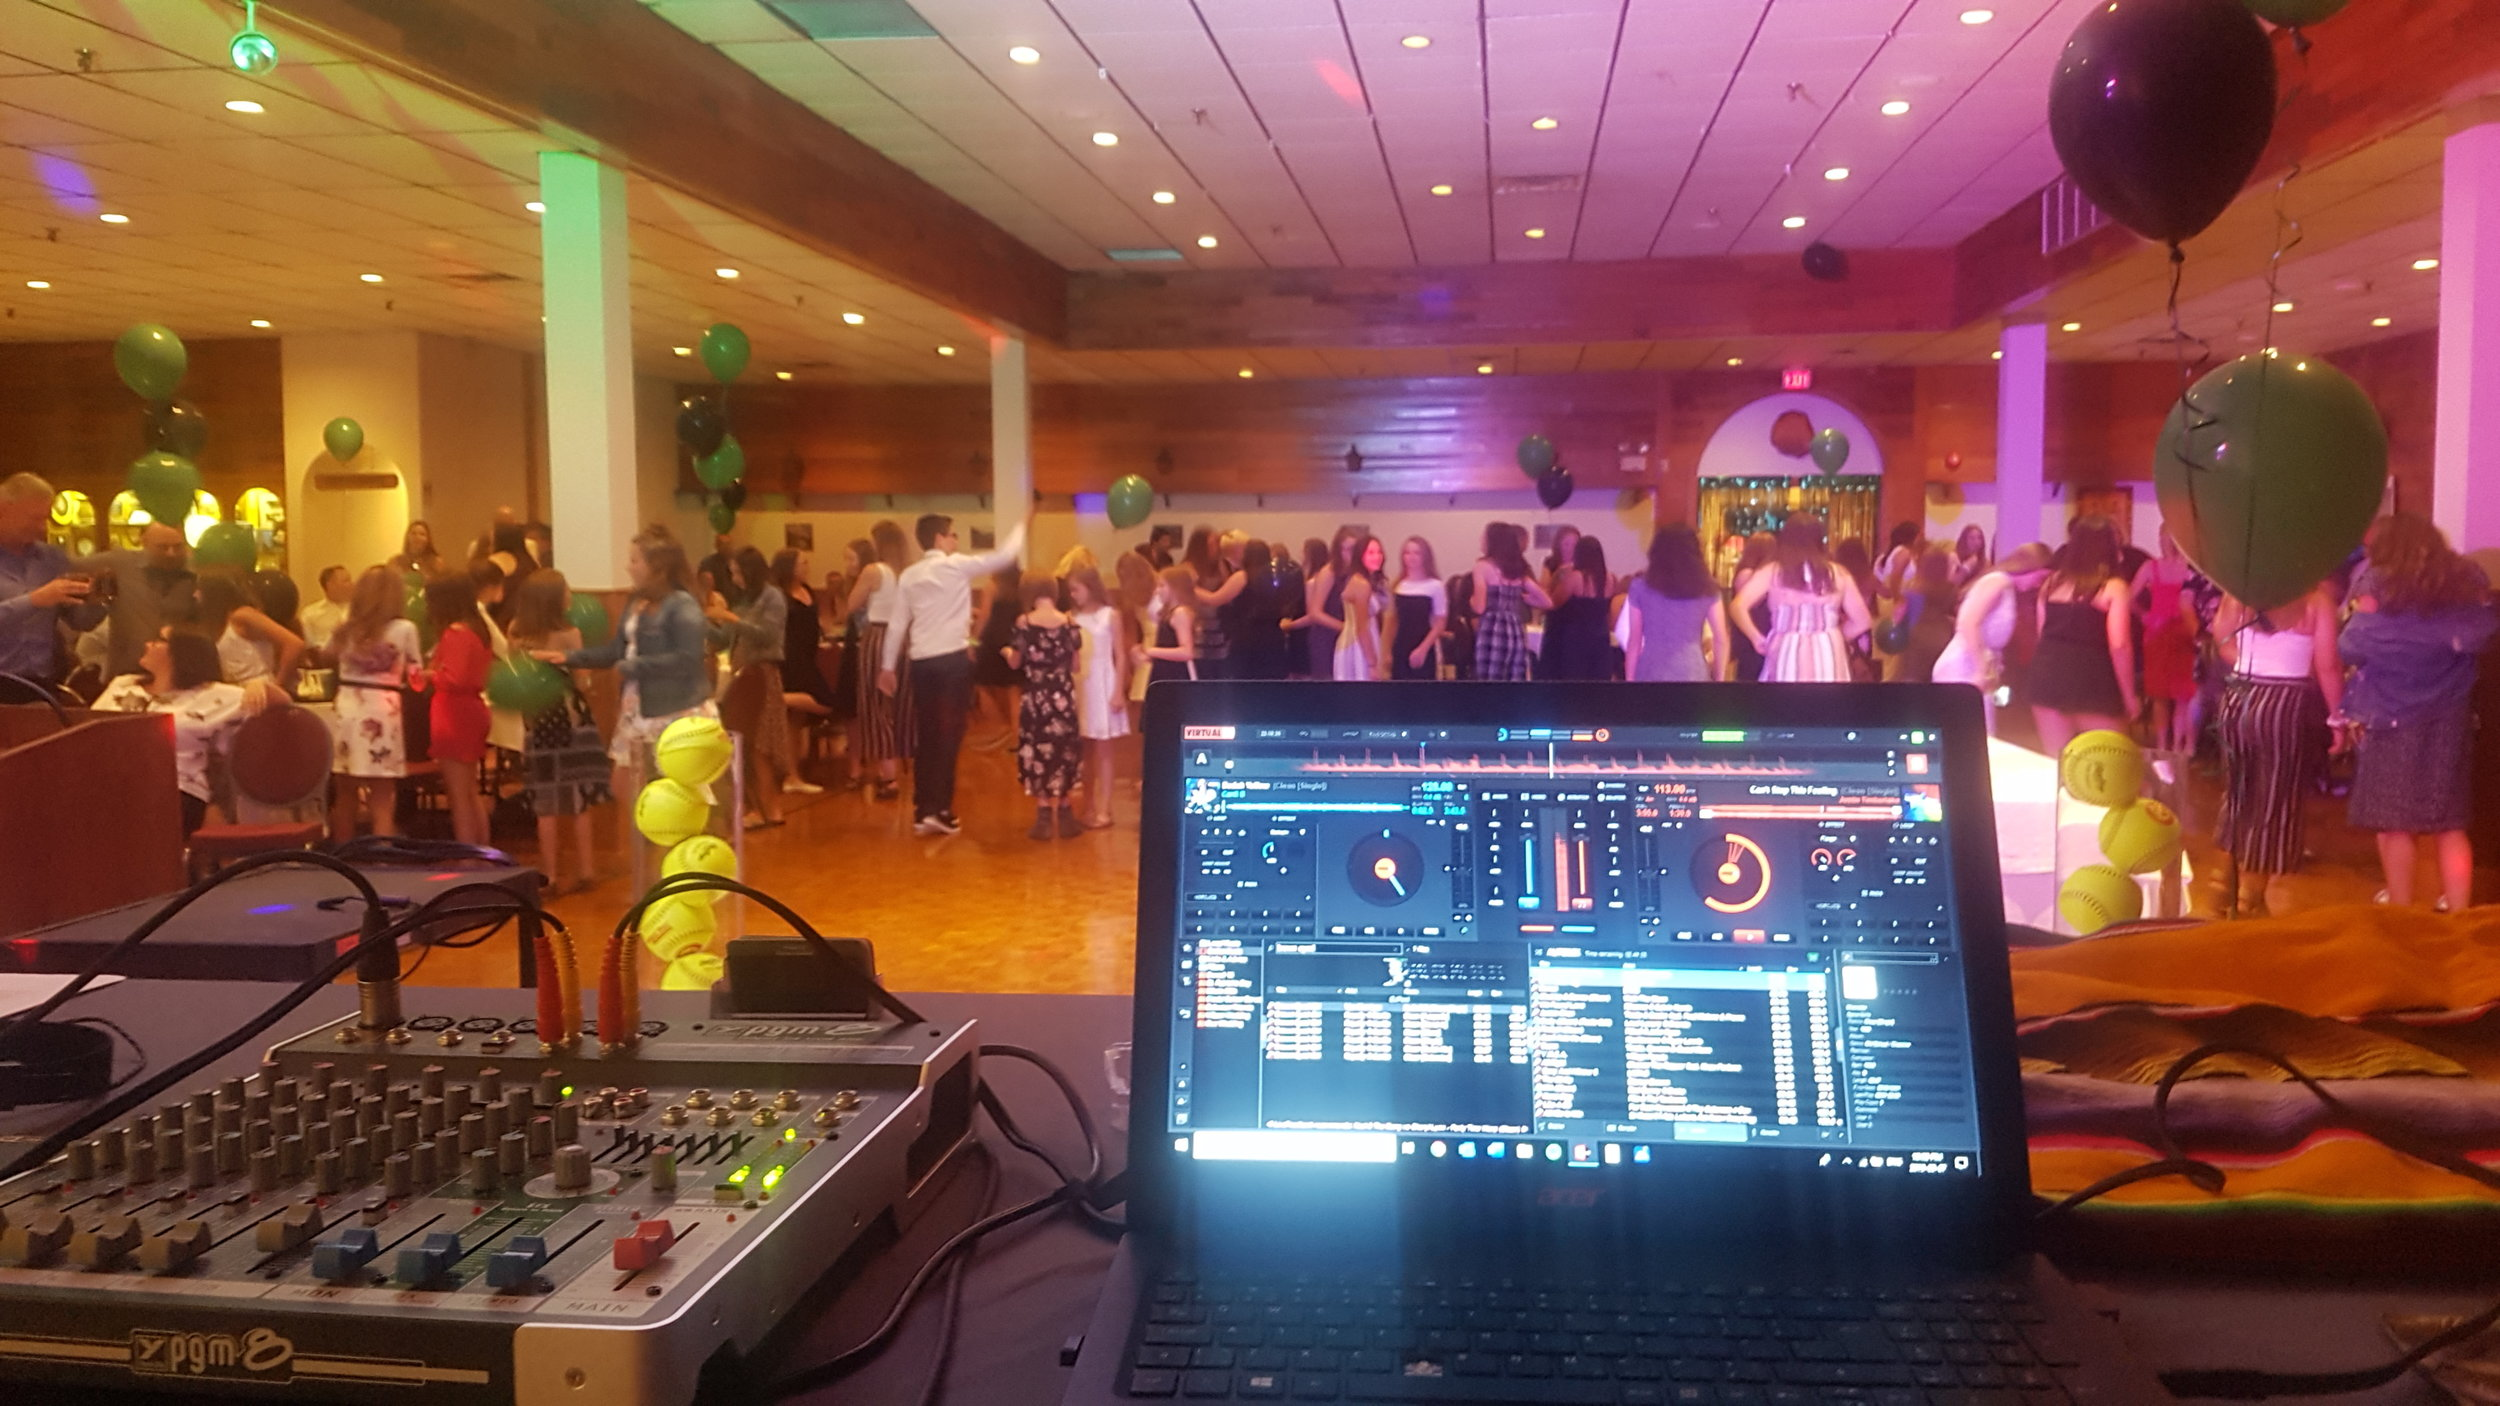 Mobile DJ - Having the right DJ can make your special event truly memorable. Jason has the talent, experience, training and technology to make this a reality.Eagle Feather Entertainment offers a basic package and several add-ons to customize your event and take it to the next level.Book us for your next wedding ceremony, reception, school dance, corporate party, birthday party, community event or holiday-themed party and you won't be disappointed!